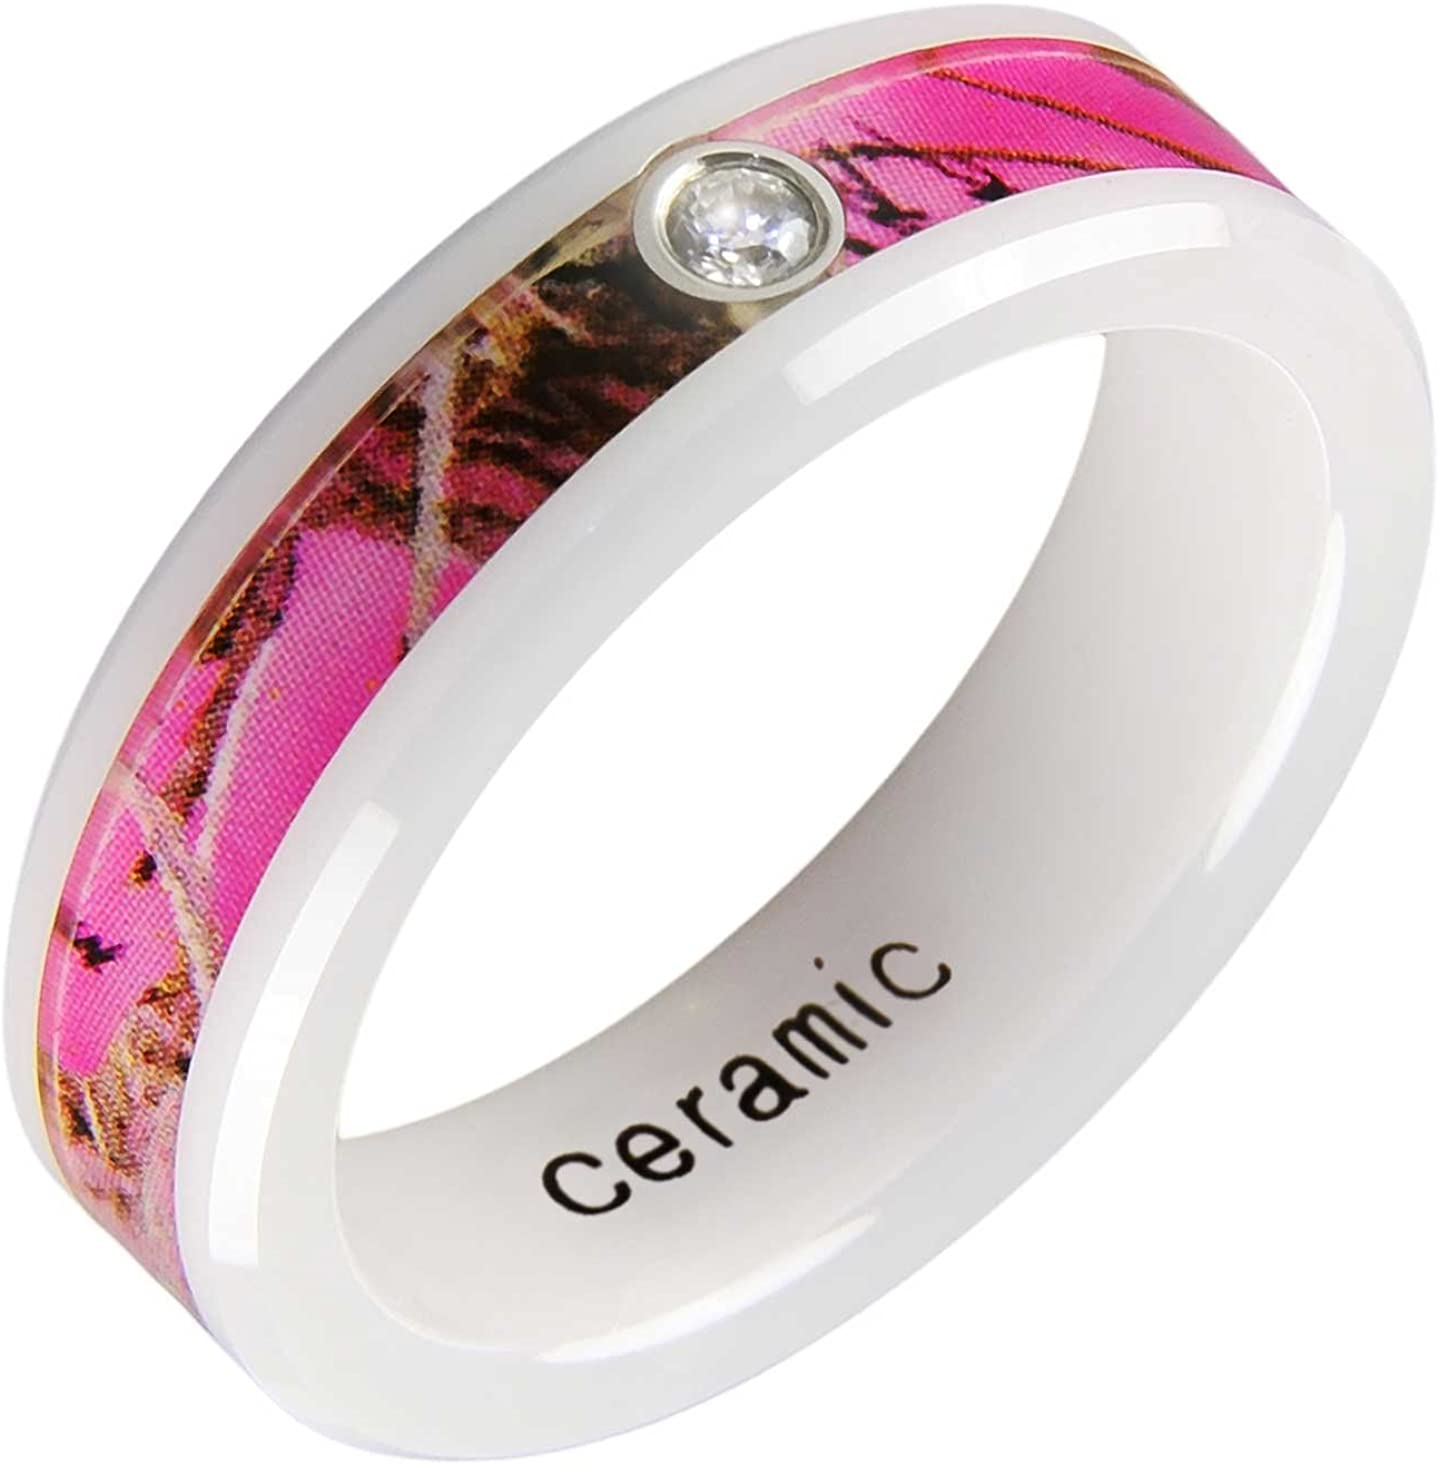 THE ICE EMPIRE JEWELRY, LLC Women Rifle Hunting Freedom Pink Forest Trees Mountain Hunter Camouflage Camo White Ceramic Band Ring Size 5-10